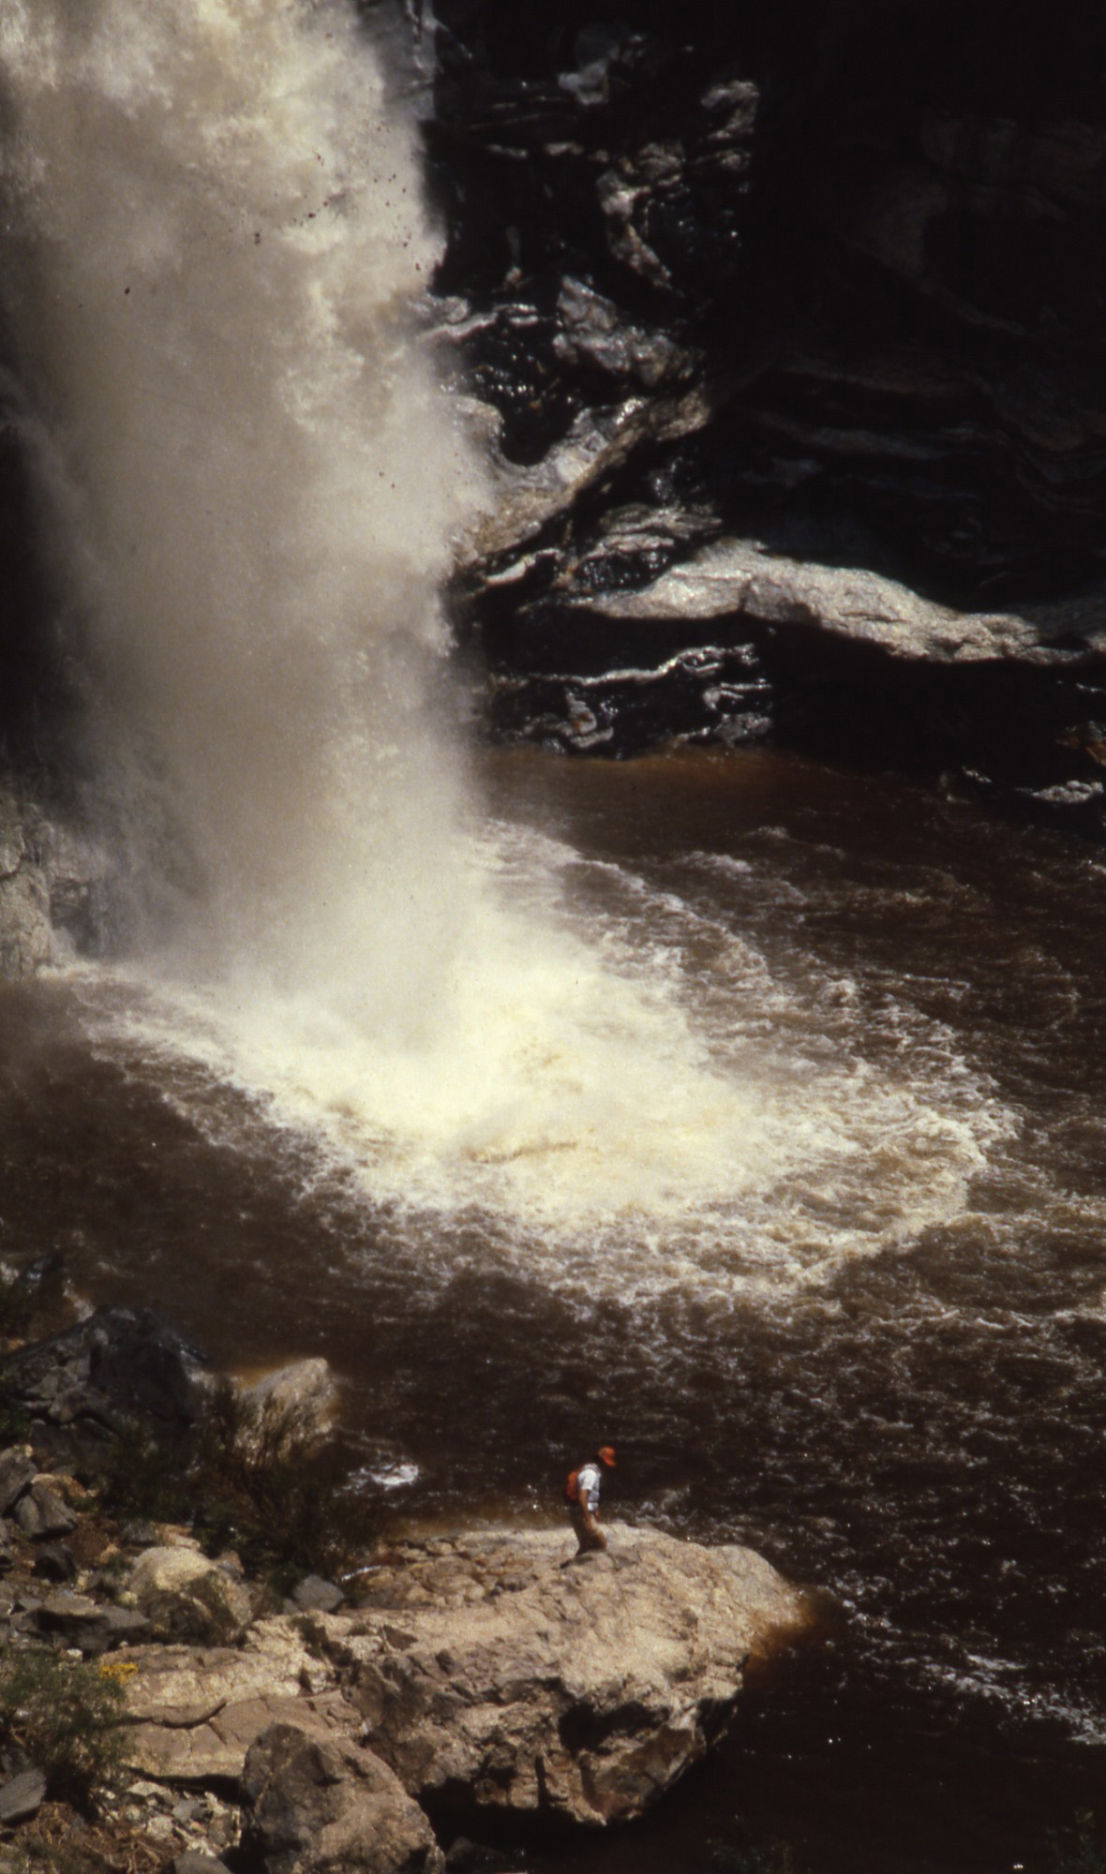 Tanque Verde Falls flash flood 1981